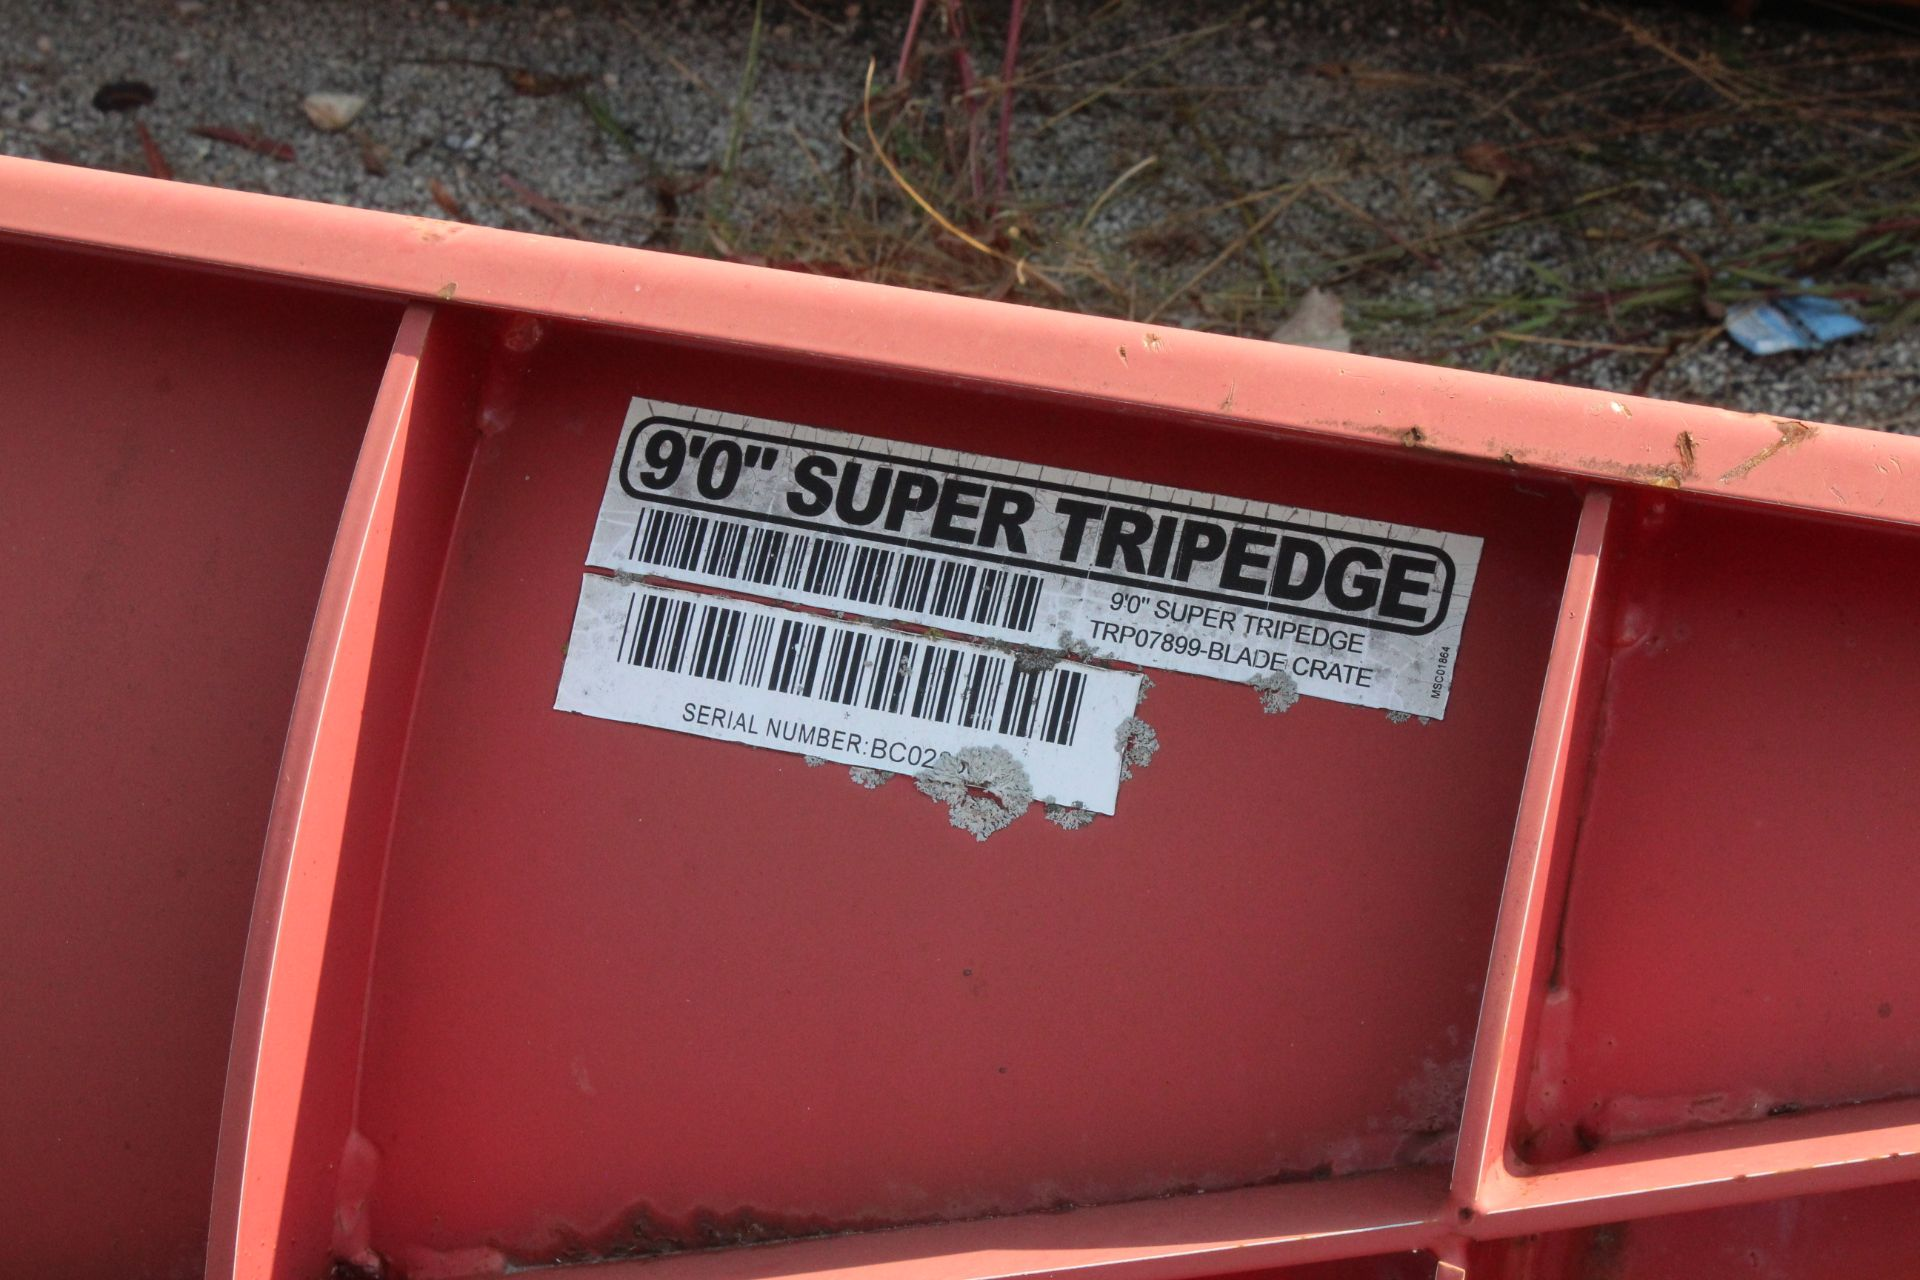 Lot 15 - BOSS 9' SUPER TRIPEDGE PLOW BLADE SKIDSTEER ATTACHMENT HYD TURNING